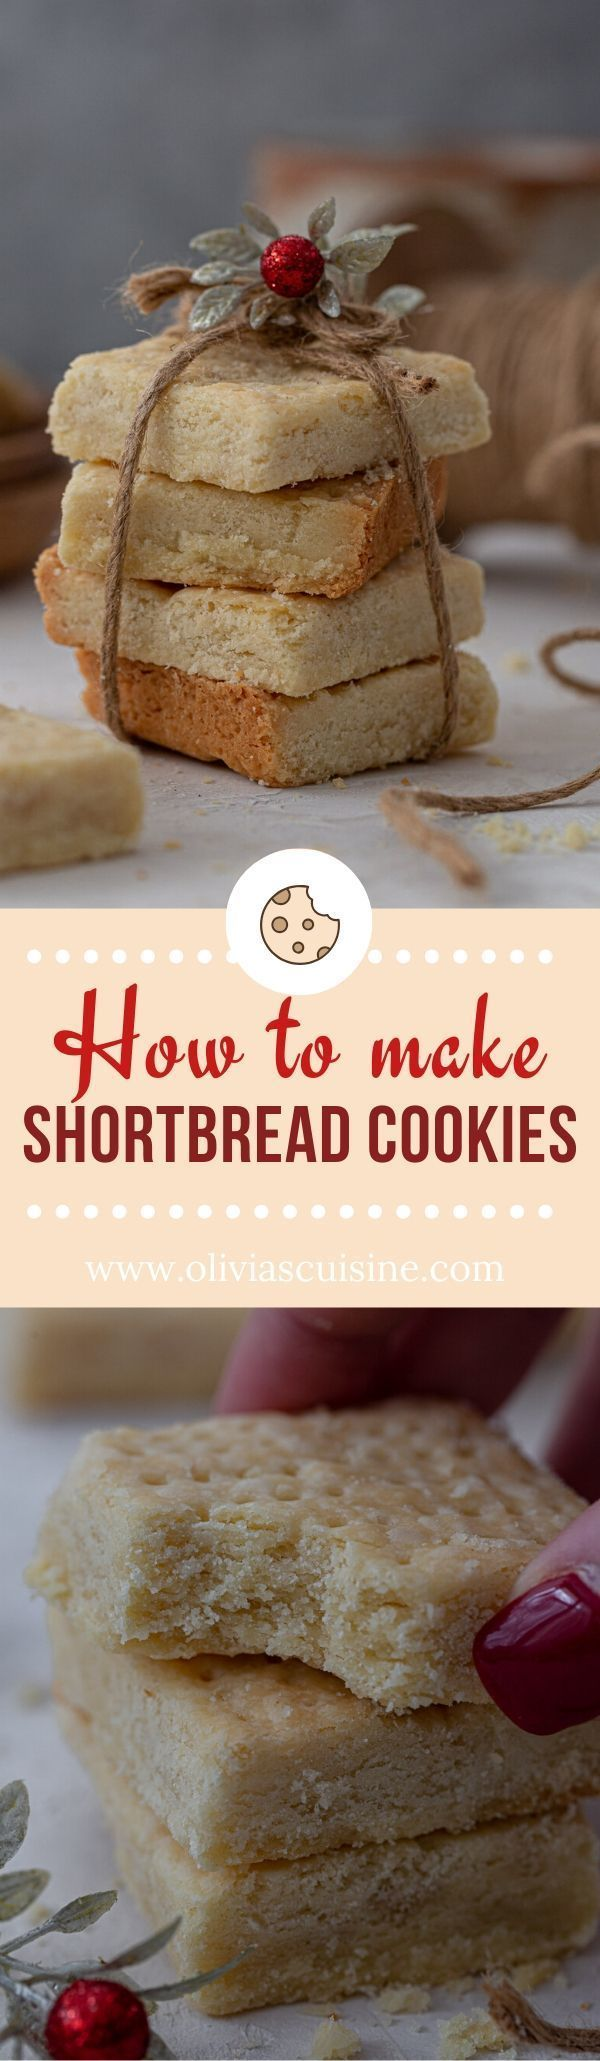 How to Make Shortbread Cookies | www.oliviascuisine.com | Melt in your mouth, buttery Scottish-style shortbread cookies are delicious year round, but especially great during the holidays! Enjoy the basic version or customize with add-ins, toppings or by dipping them in chocolate. (Follow @oliviascuisine for more delicious recipes!) #shortbread #cookies #baking #easy